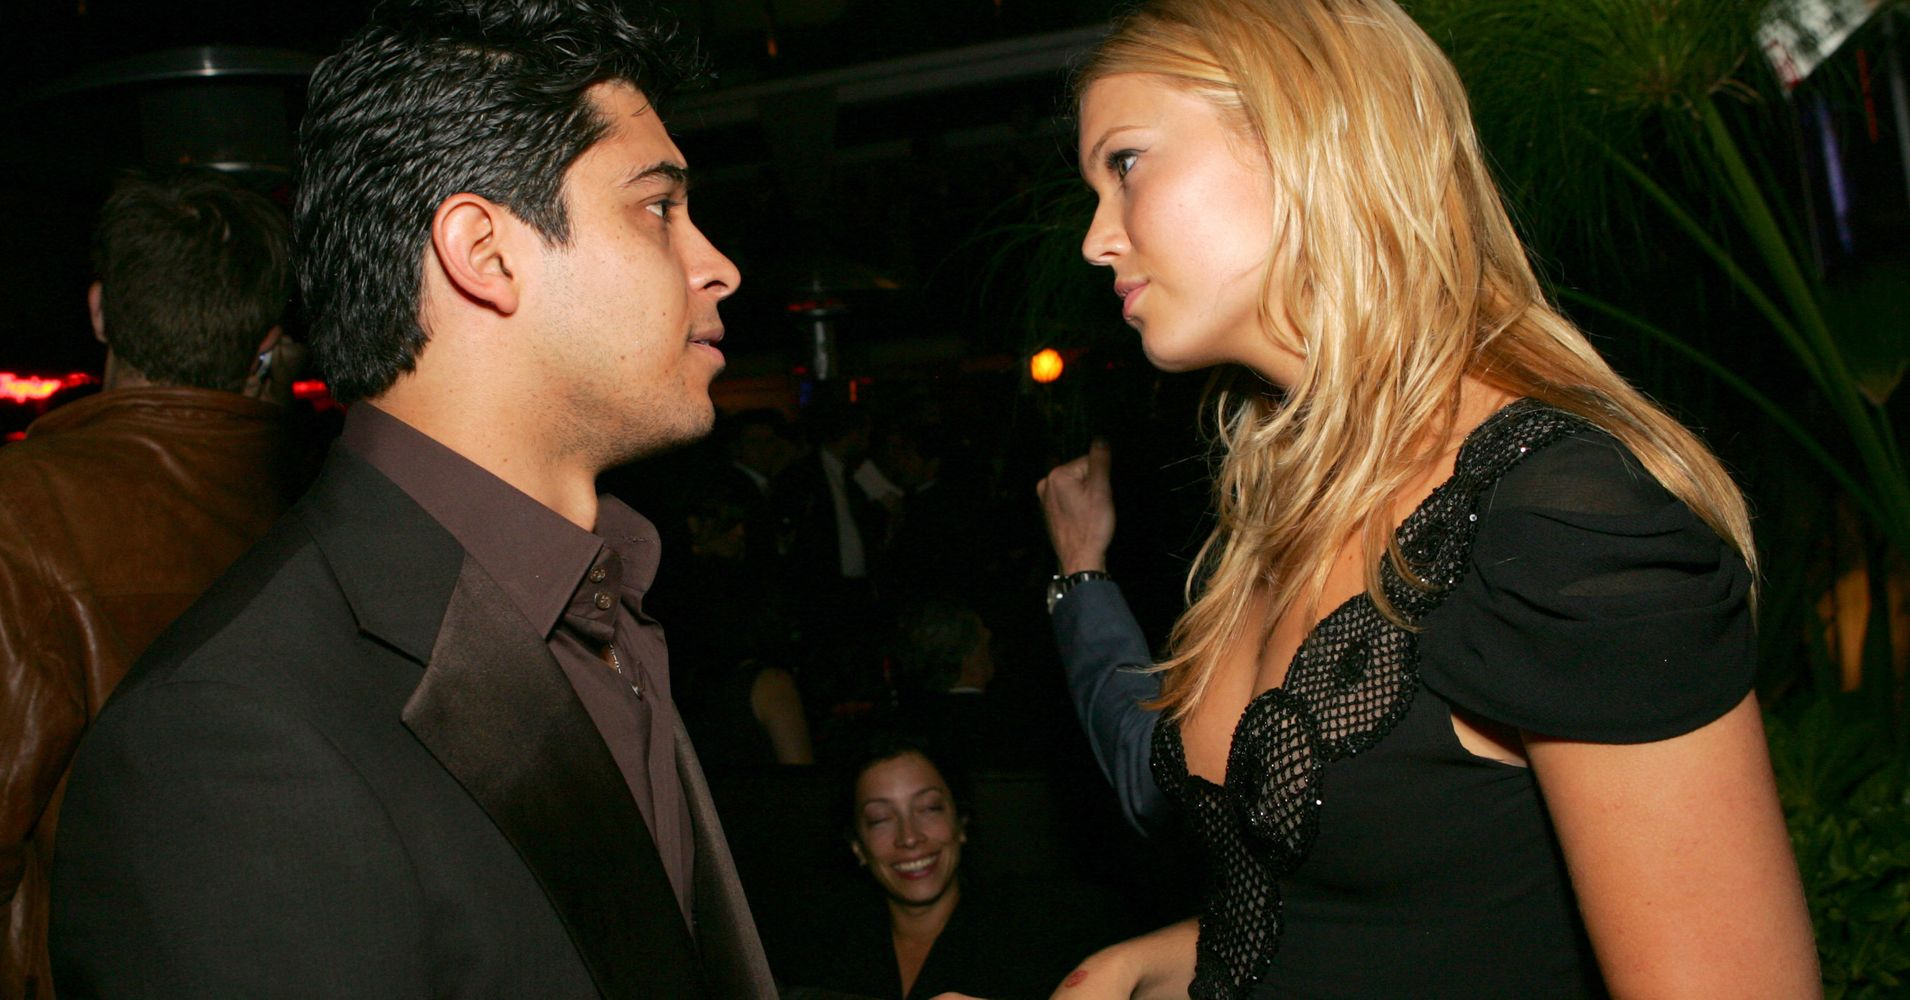 Mandy Moore Says Wilmer Valderrama Lied About Taking Her Virginity